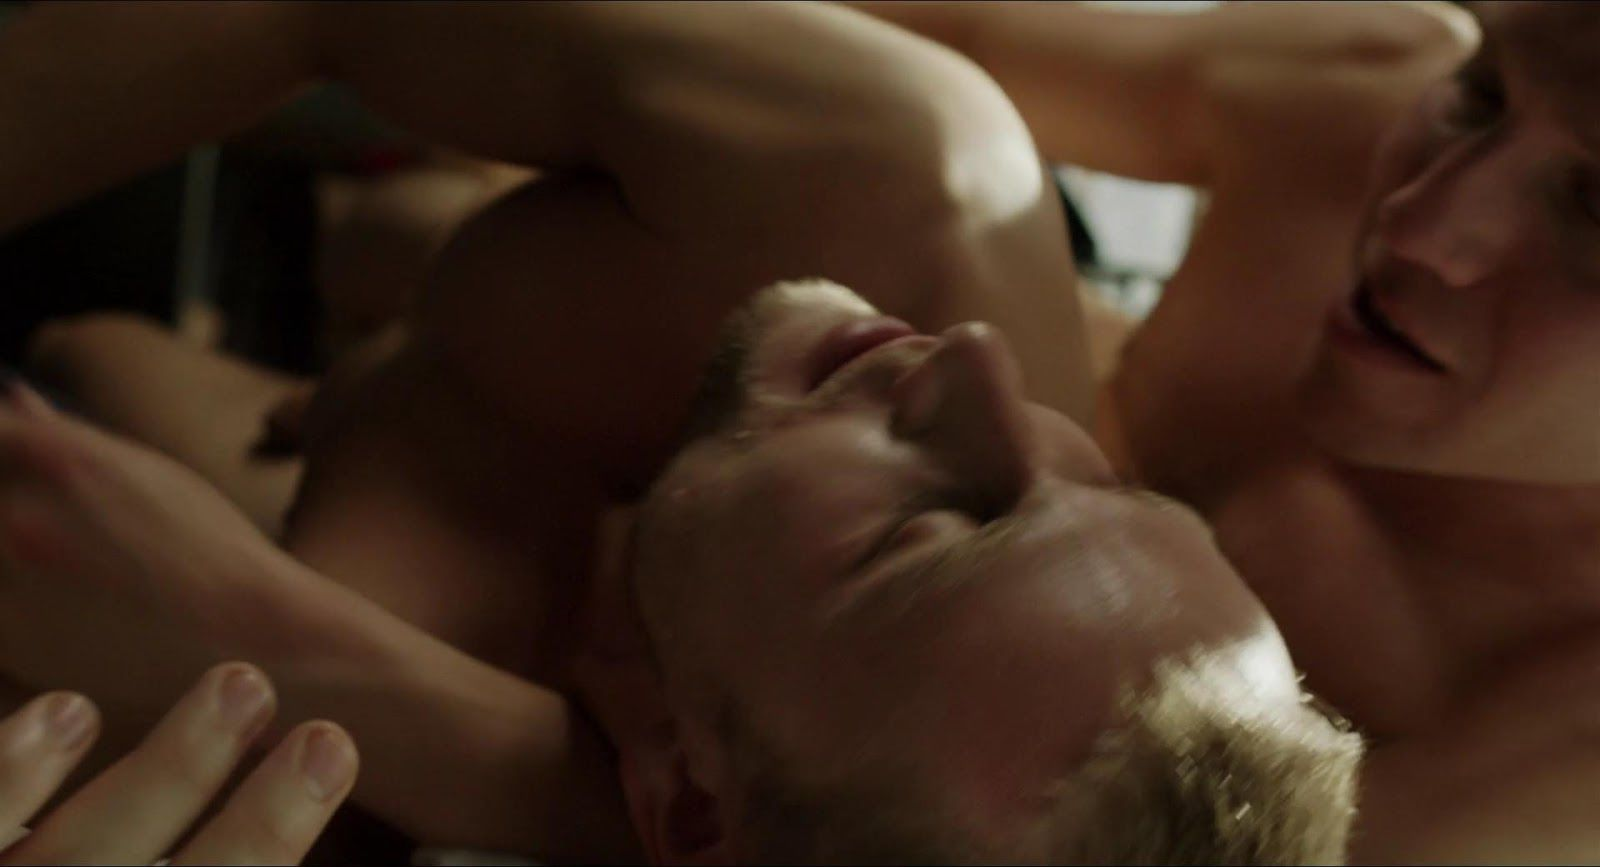 Max Riemelt And Hanno Koffler - Sex Scene, Nudity, Kissing And Deleted -9567